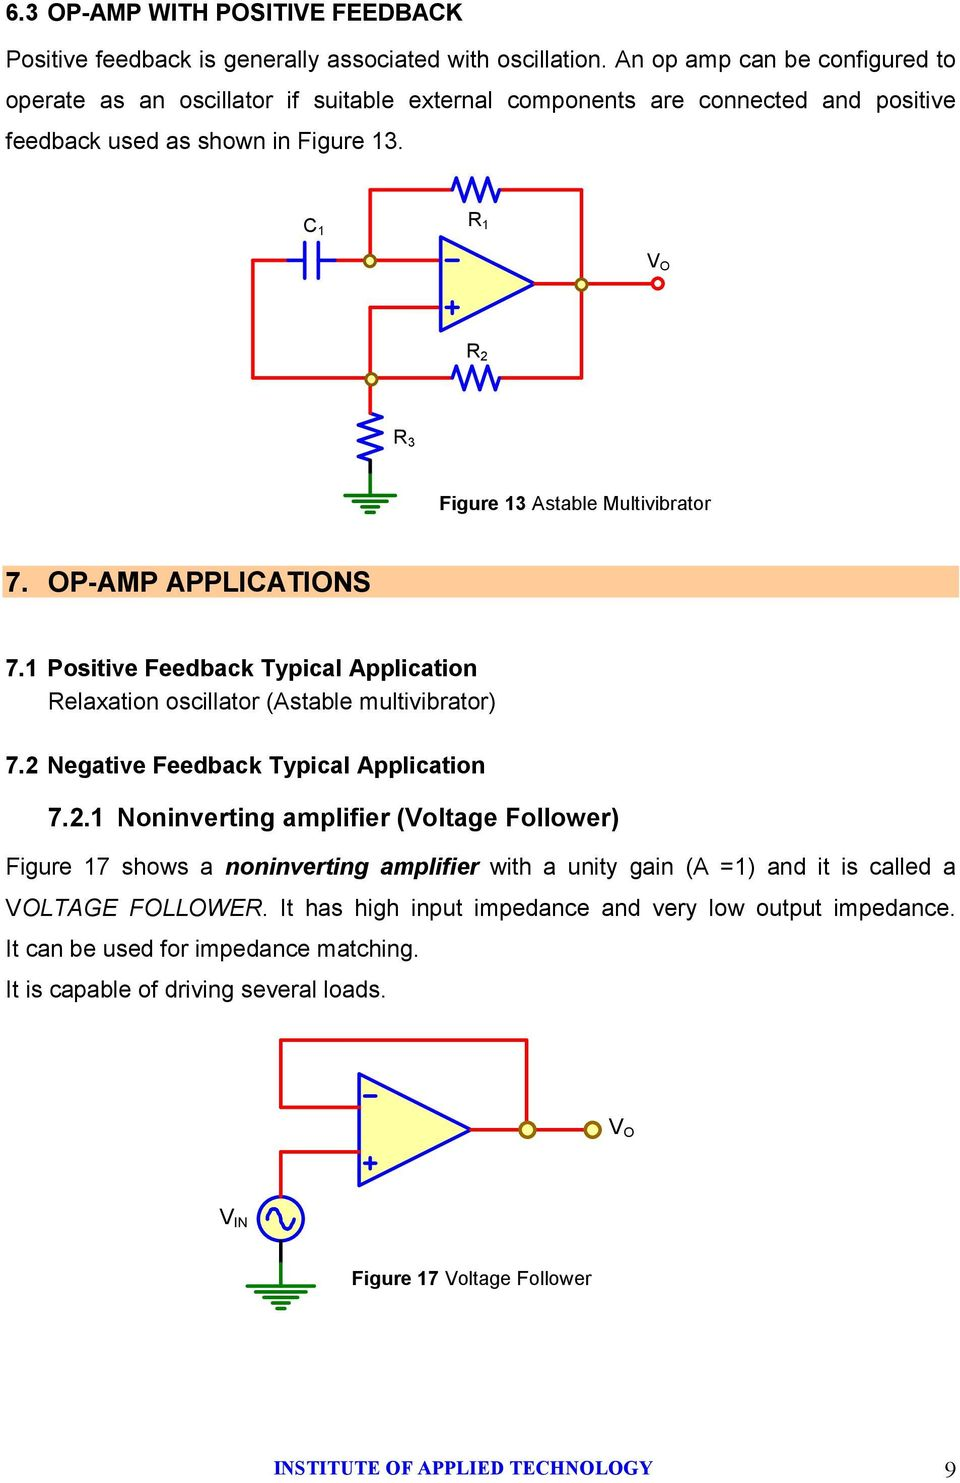 C 1 R 1 R 2 R 3 Figure 13 Astable Multivibrator 7. OPAMP APPLICATIONS 7.1 Positive Feedback Typical Application Relaxation oscillator (Astable multivibrator) 7.